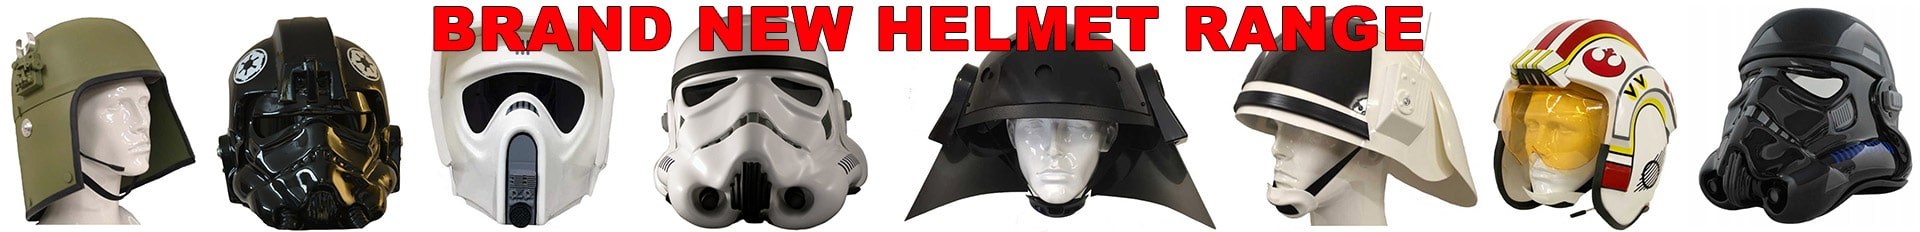 Brand New Star Wars Helmet Range